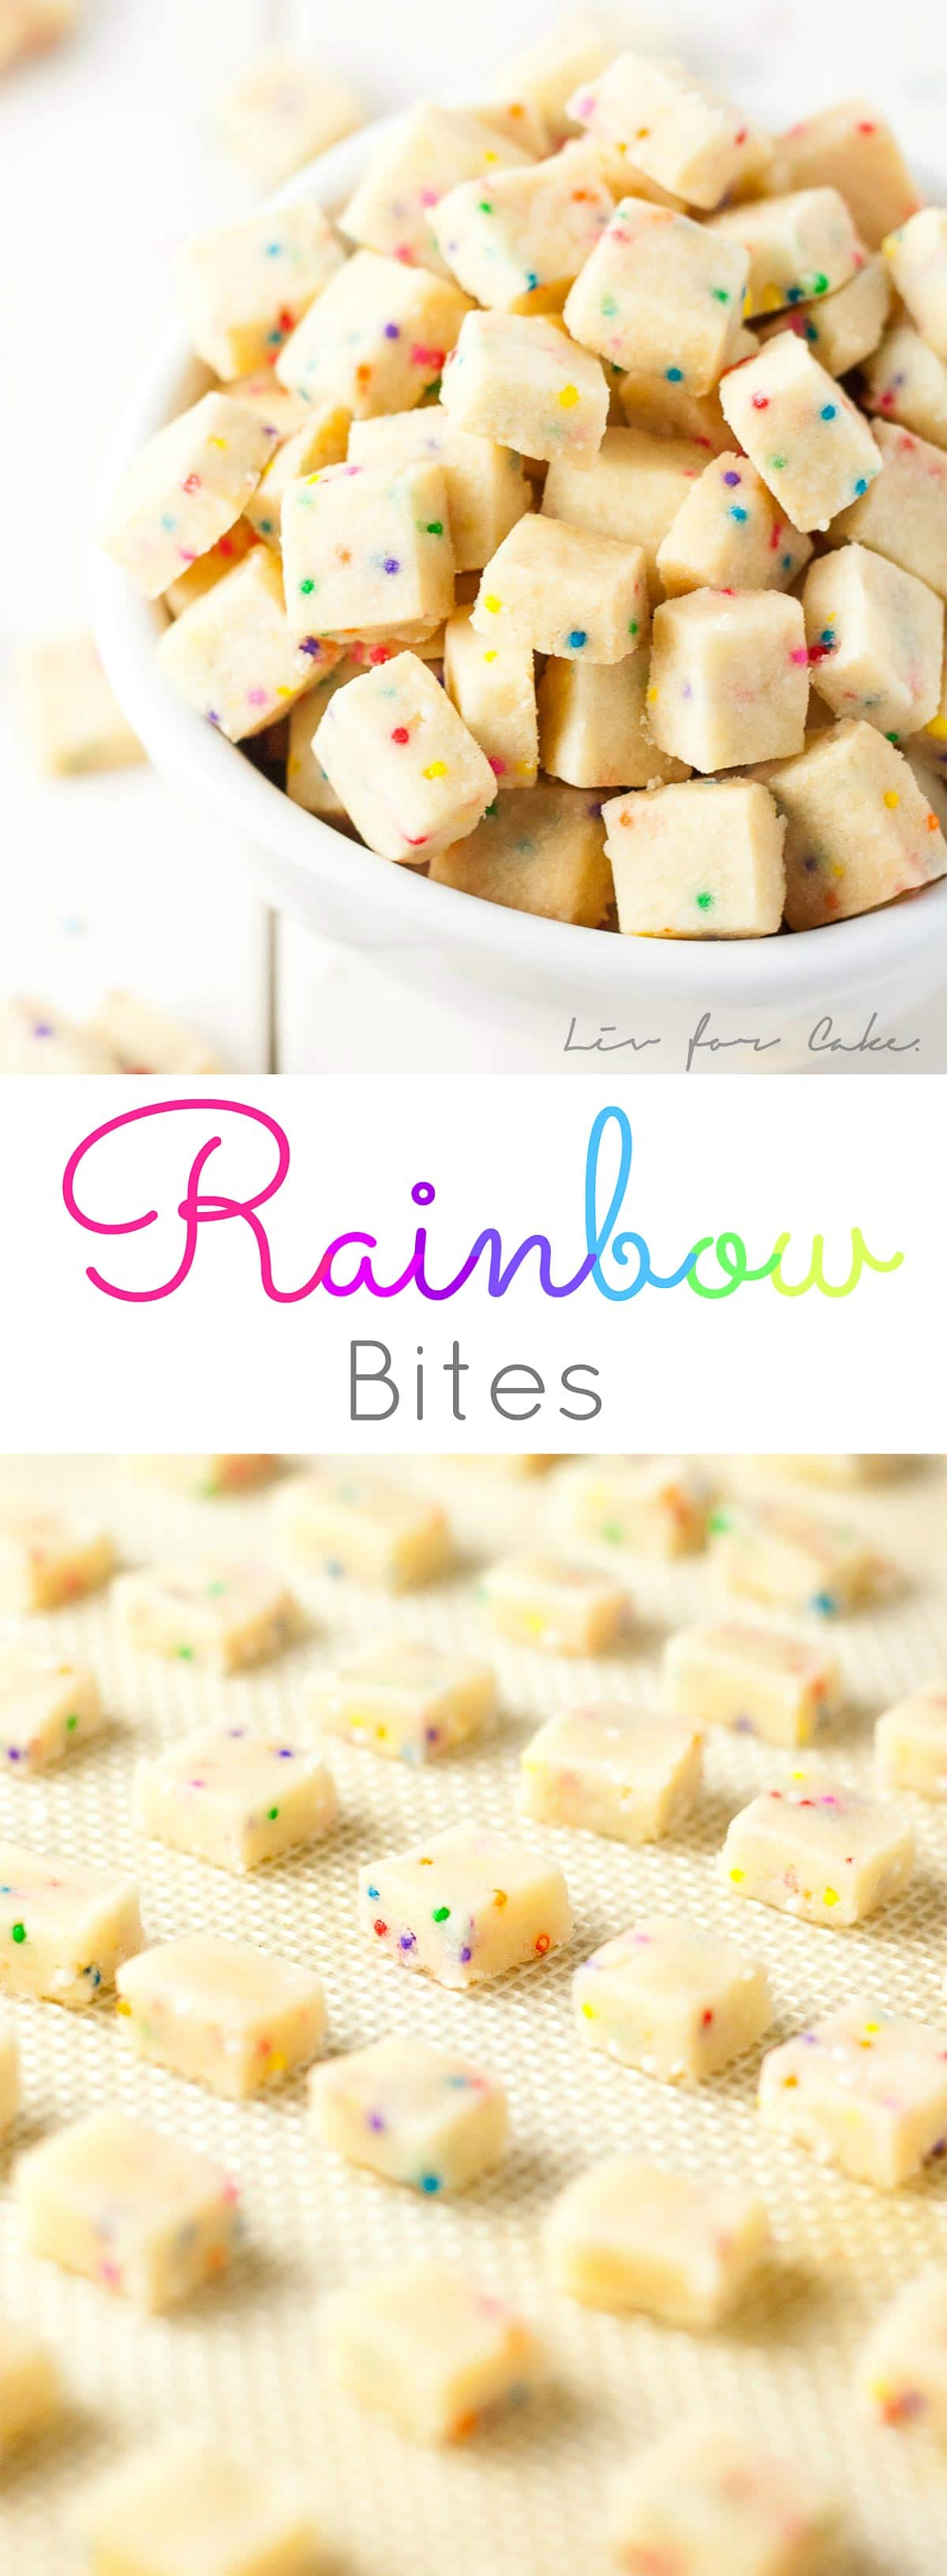 Tiny shortbread cookies studded with rainbow sprinkles. Kids will love these Rainbow Bites! Change the color of the sprinkles for any holiday or event. | livforcake.com